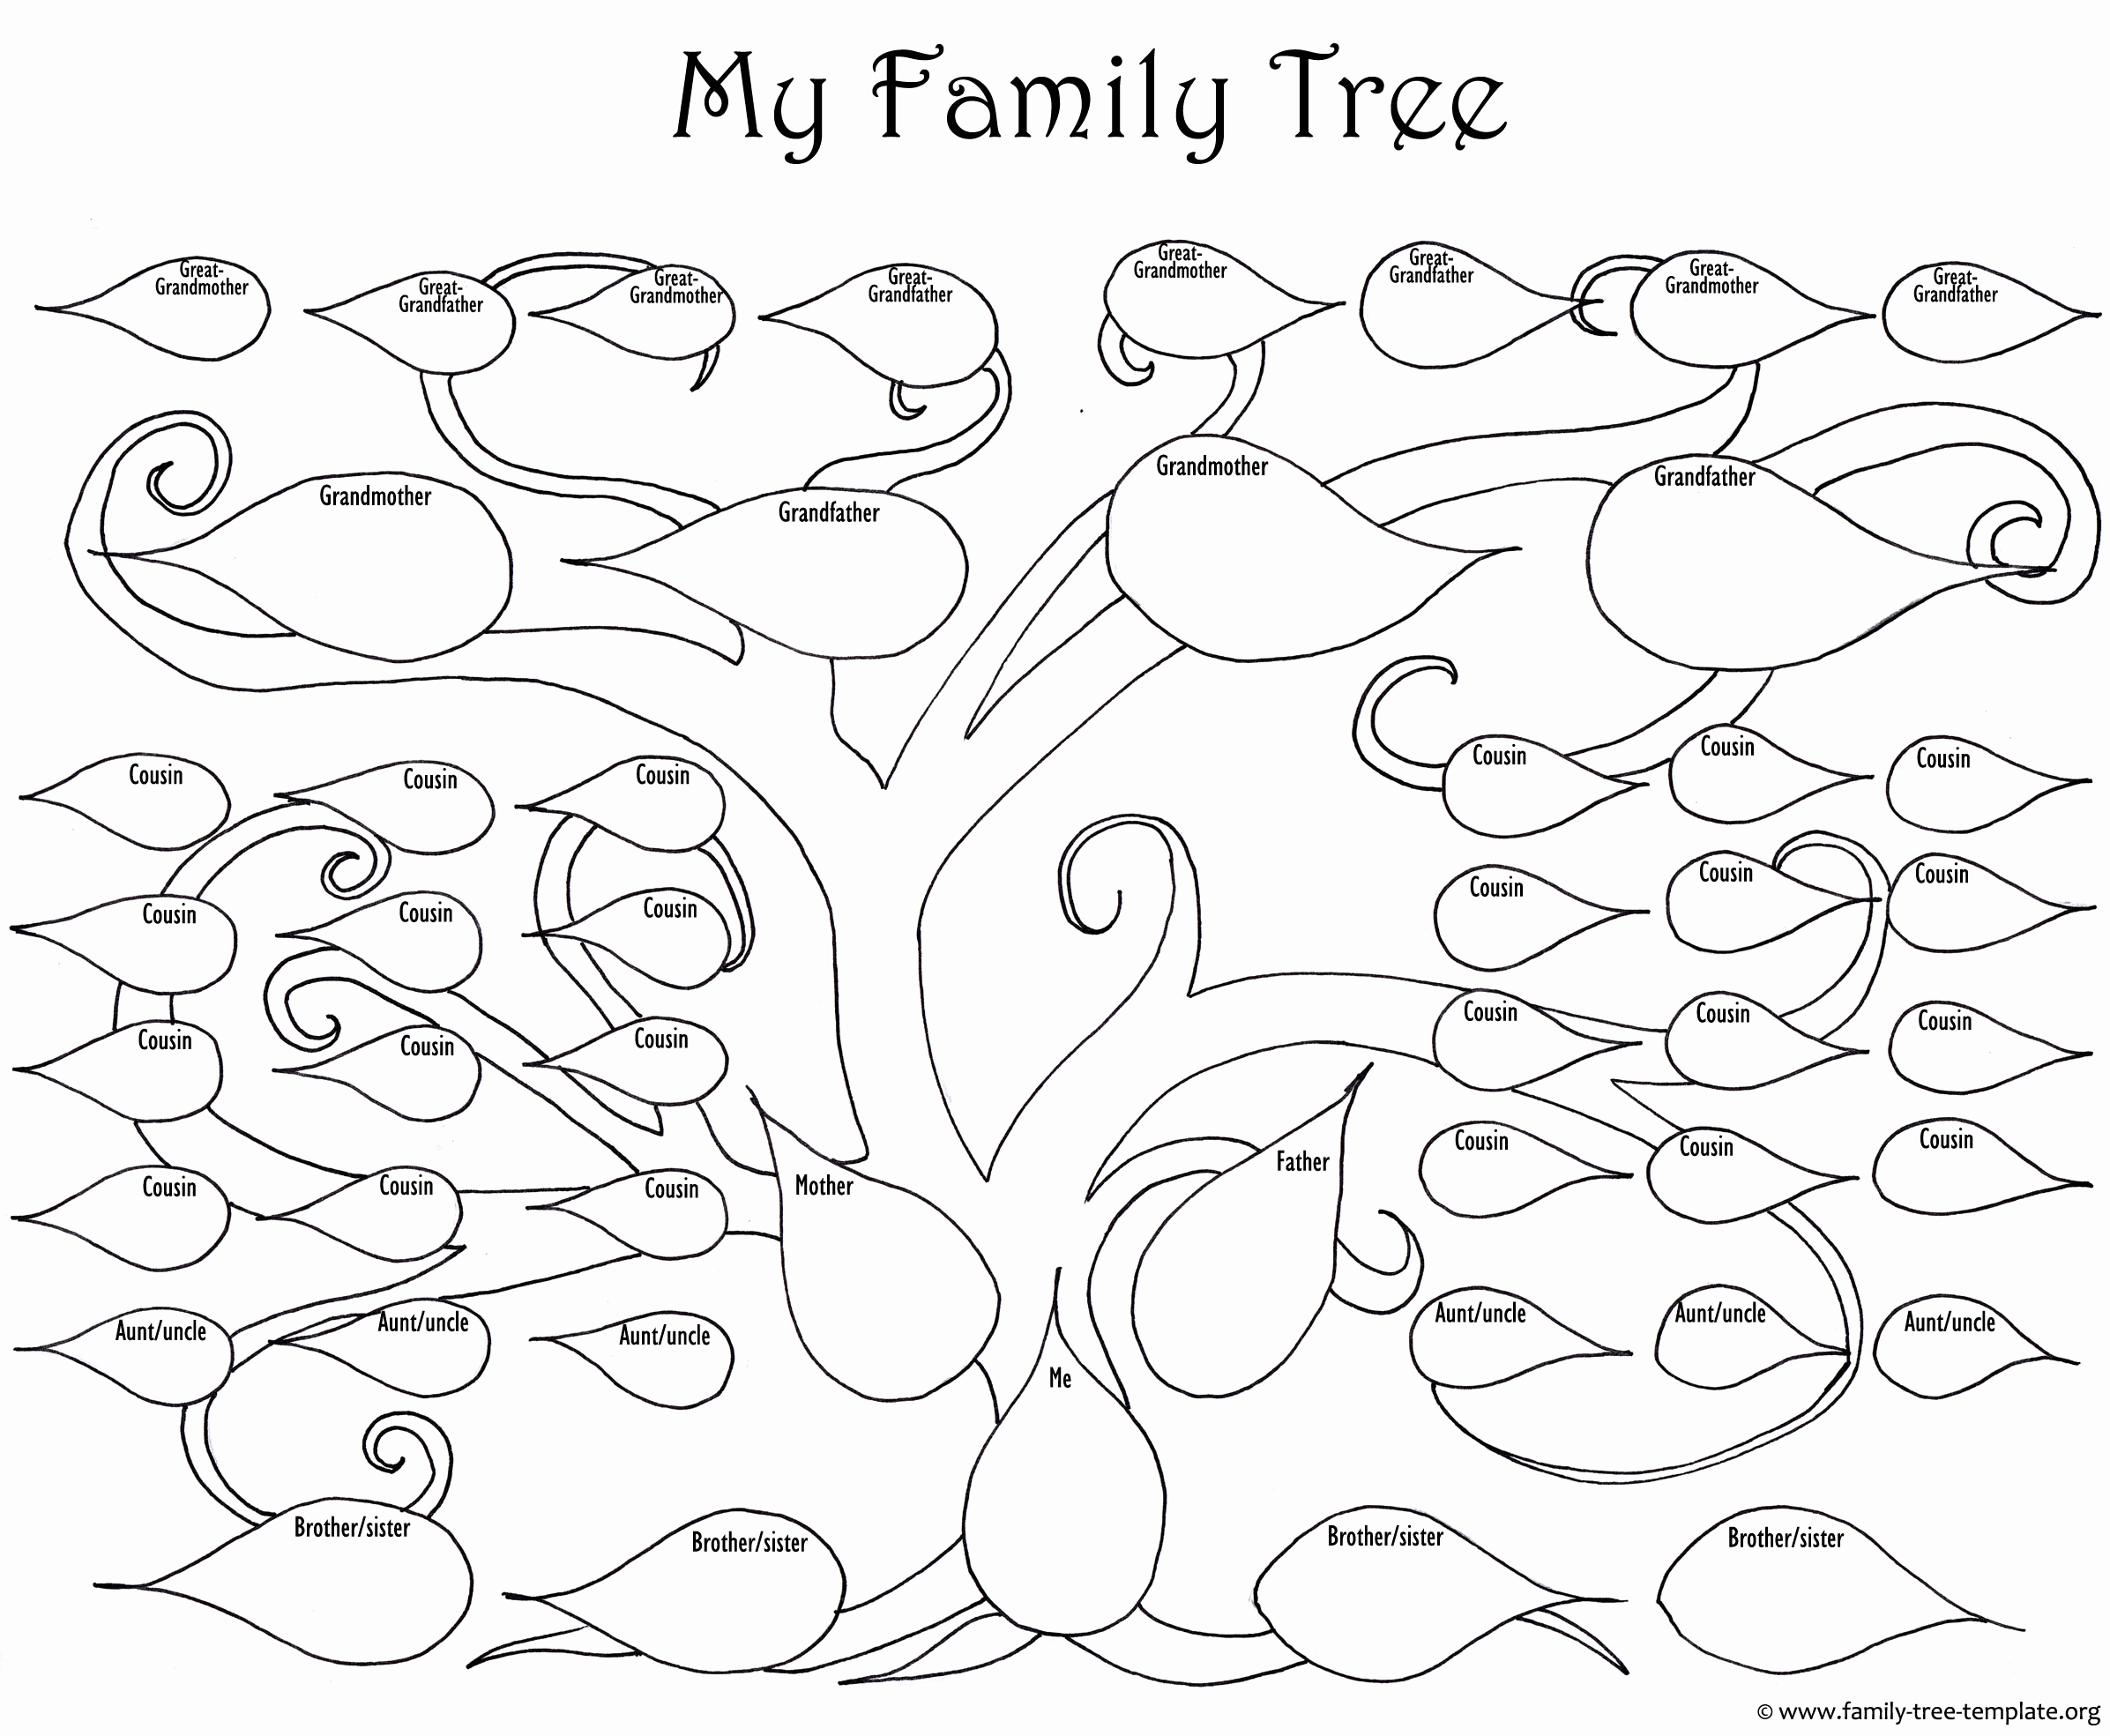 Family Tree Worksheets for Kids Beautiful A Printable Blank Family Tree to Make Your Kids Genealogy